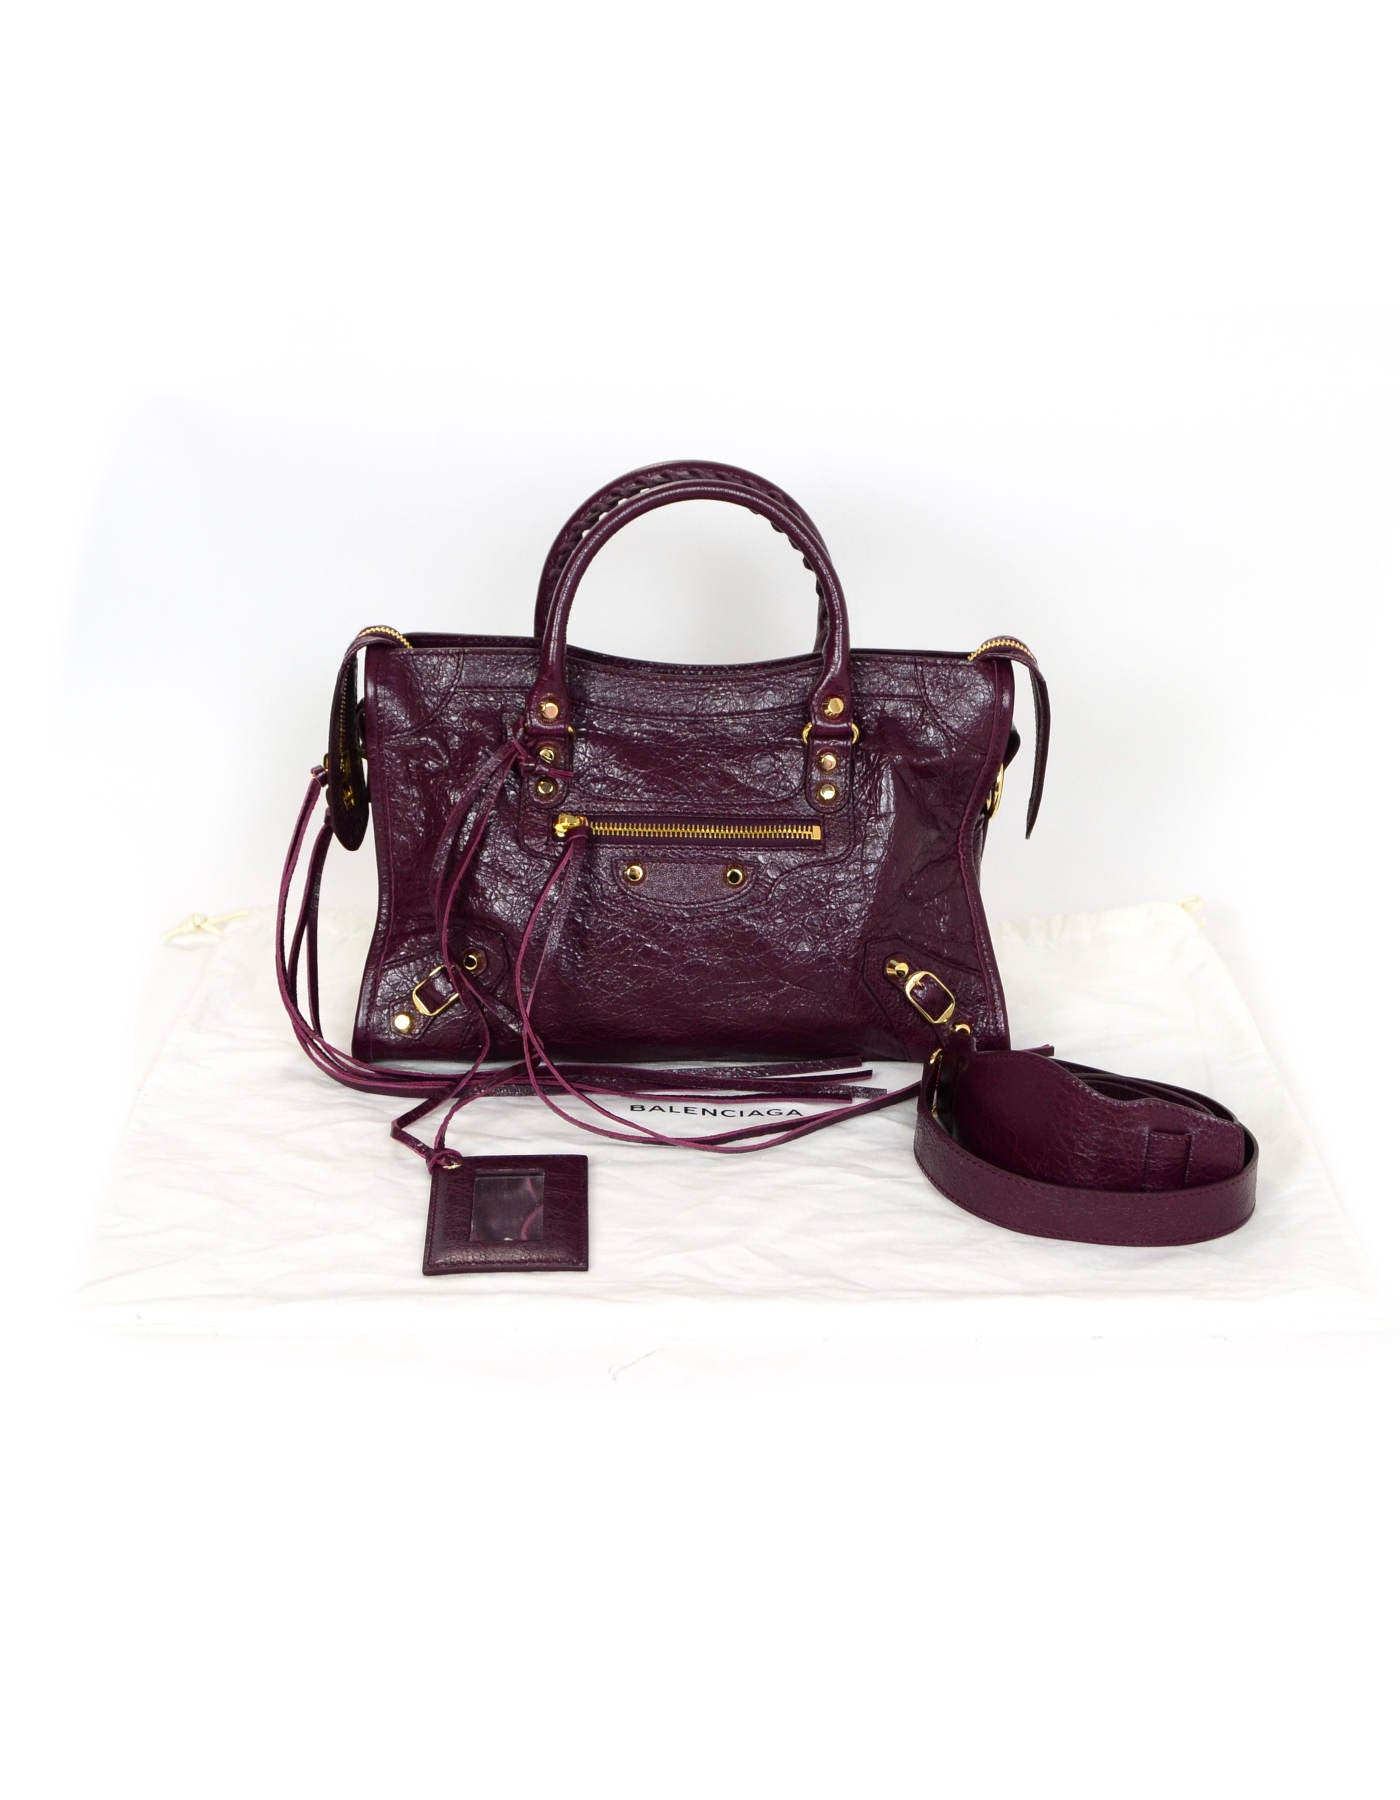 18cf20f0a943 Balenciaga  16 Burgundy Distressed Leather Classic City S Small Crossbody  Bag For Sale at 1stdibs